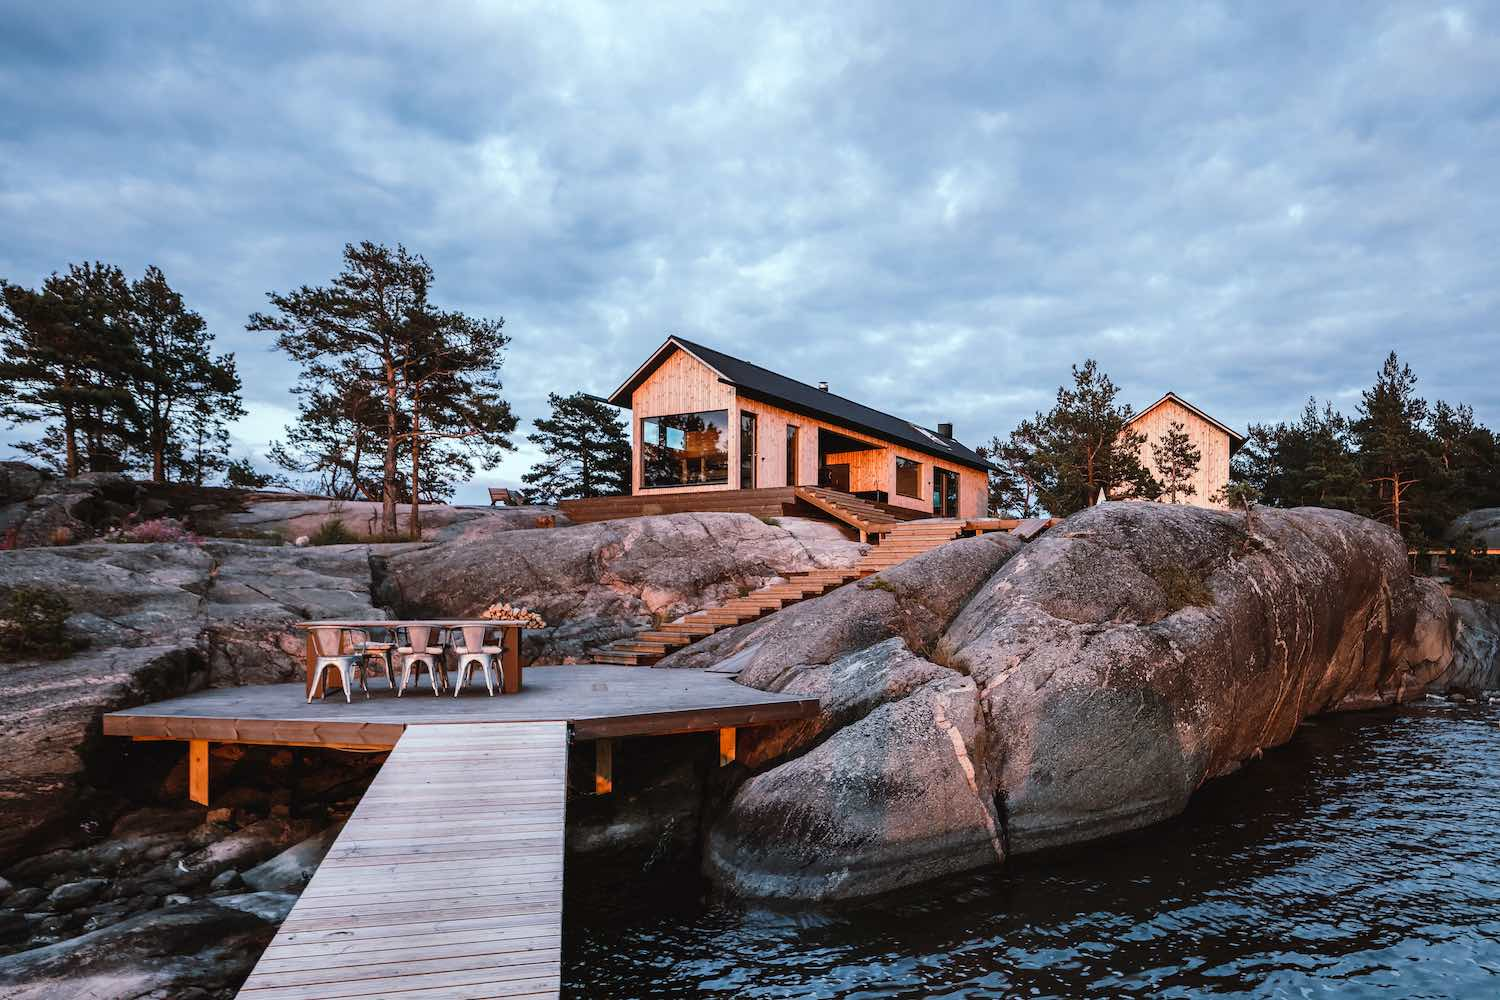 beautiful outdoor living space an a deck in an island with rocks on the edge